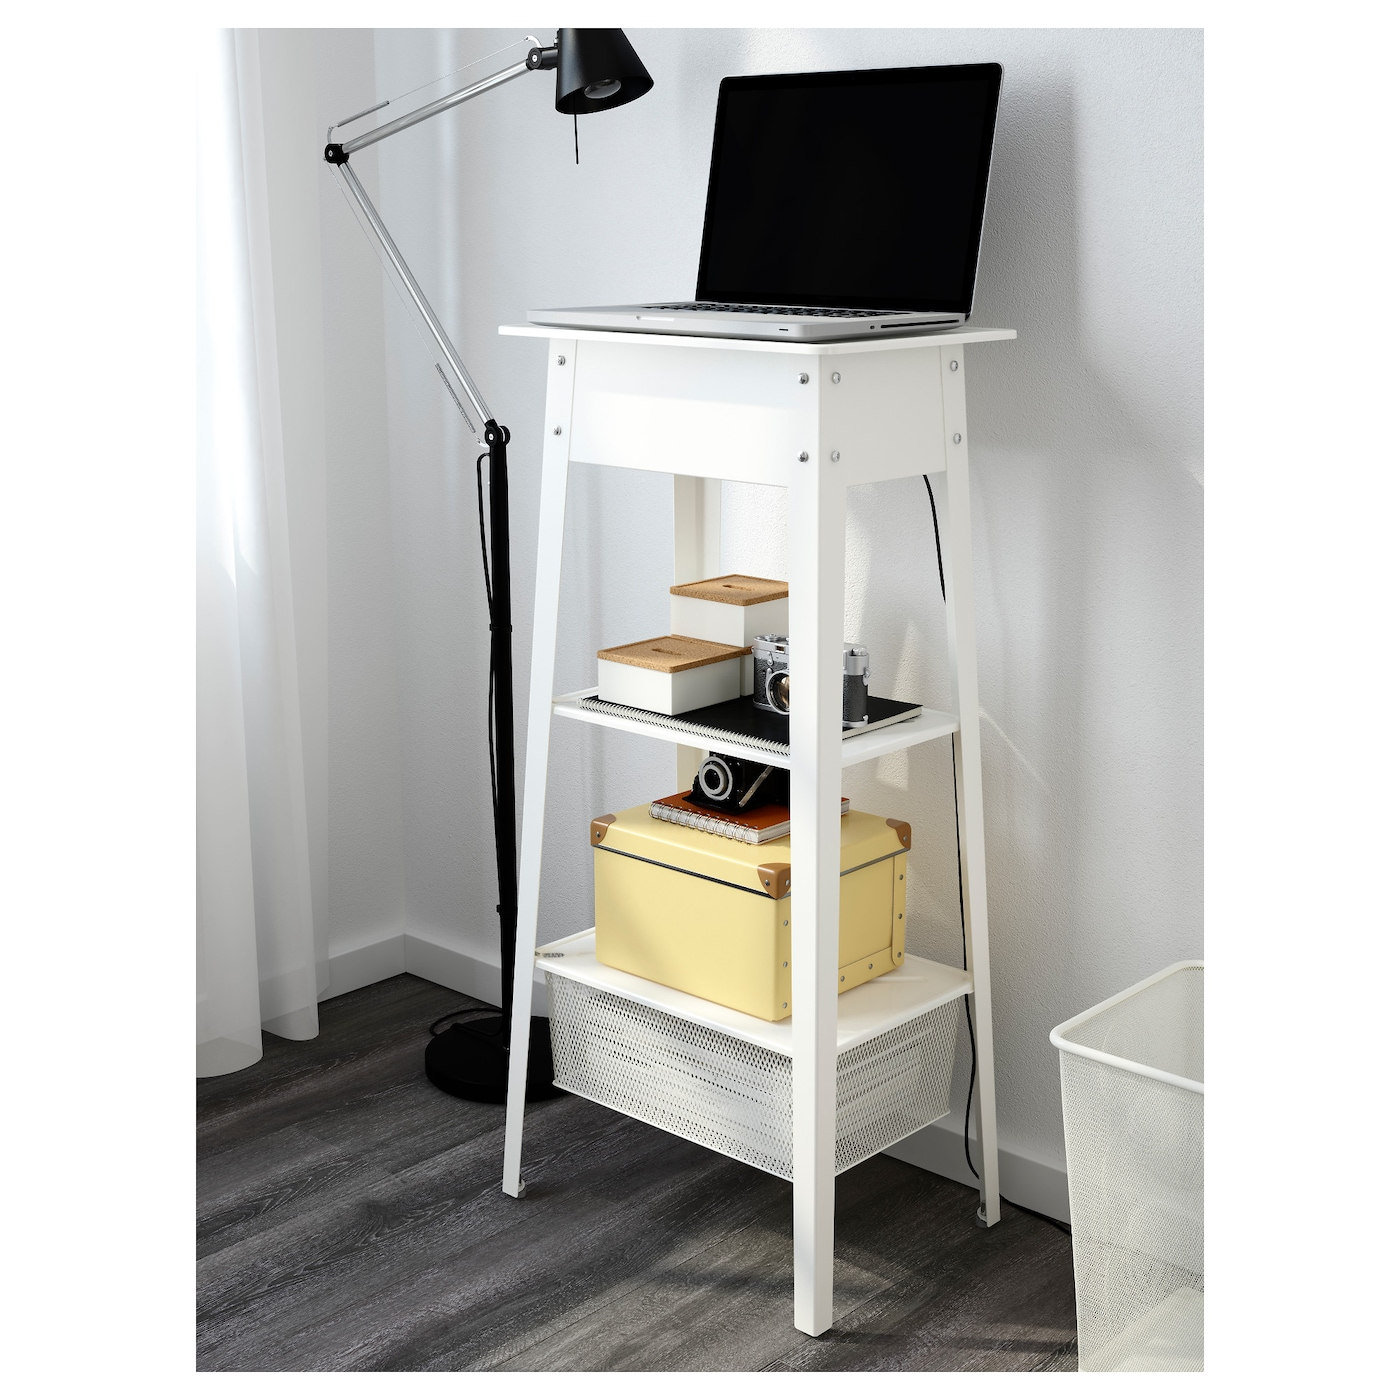 Ikea ps 2014 standing laptop station white ikea for Mobile computer ikea